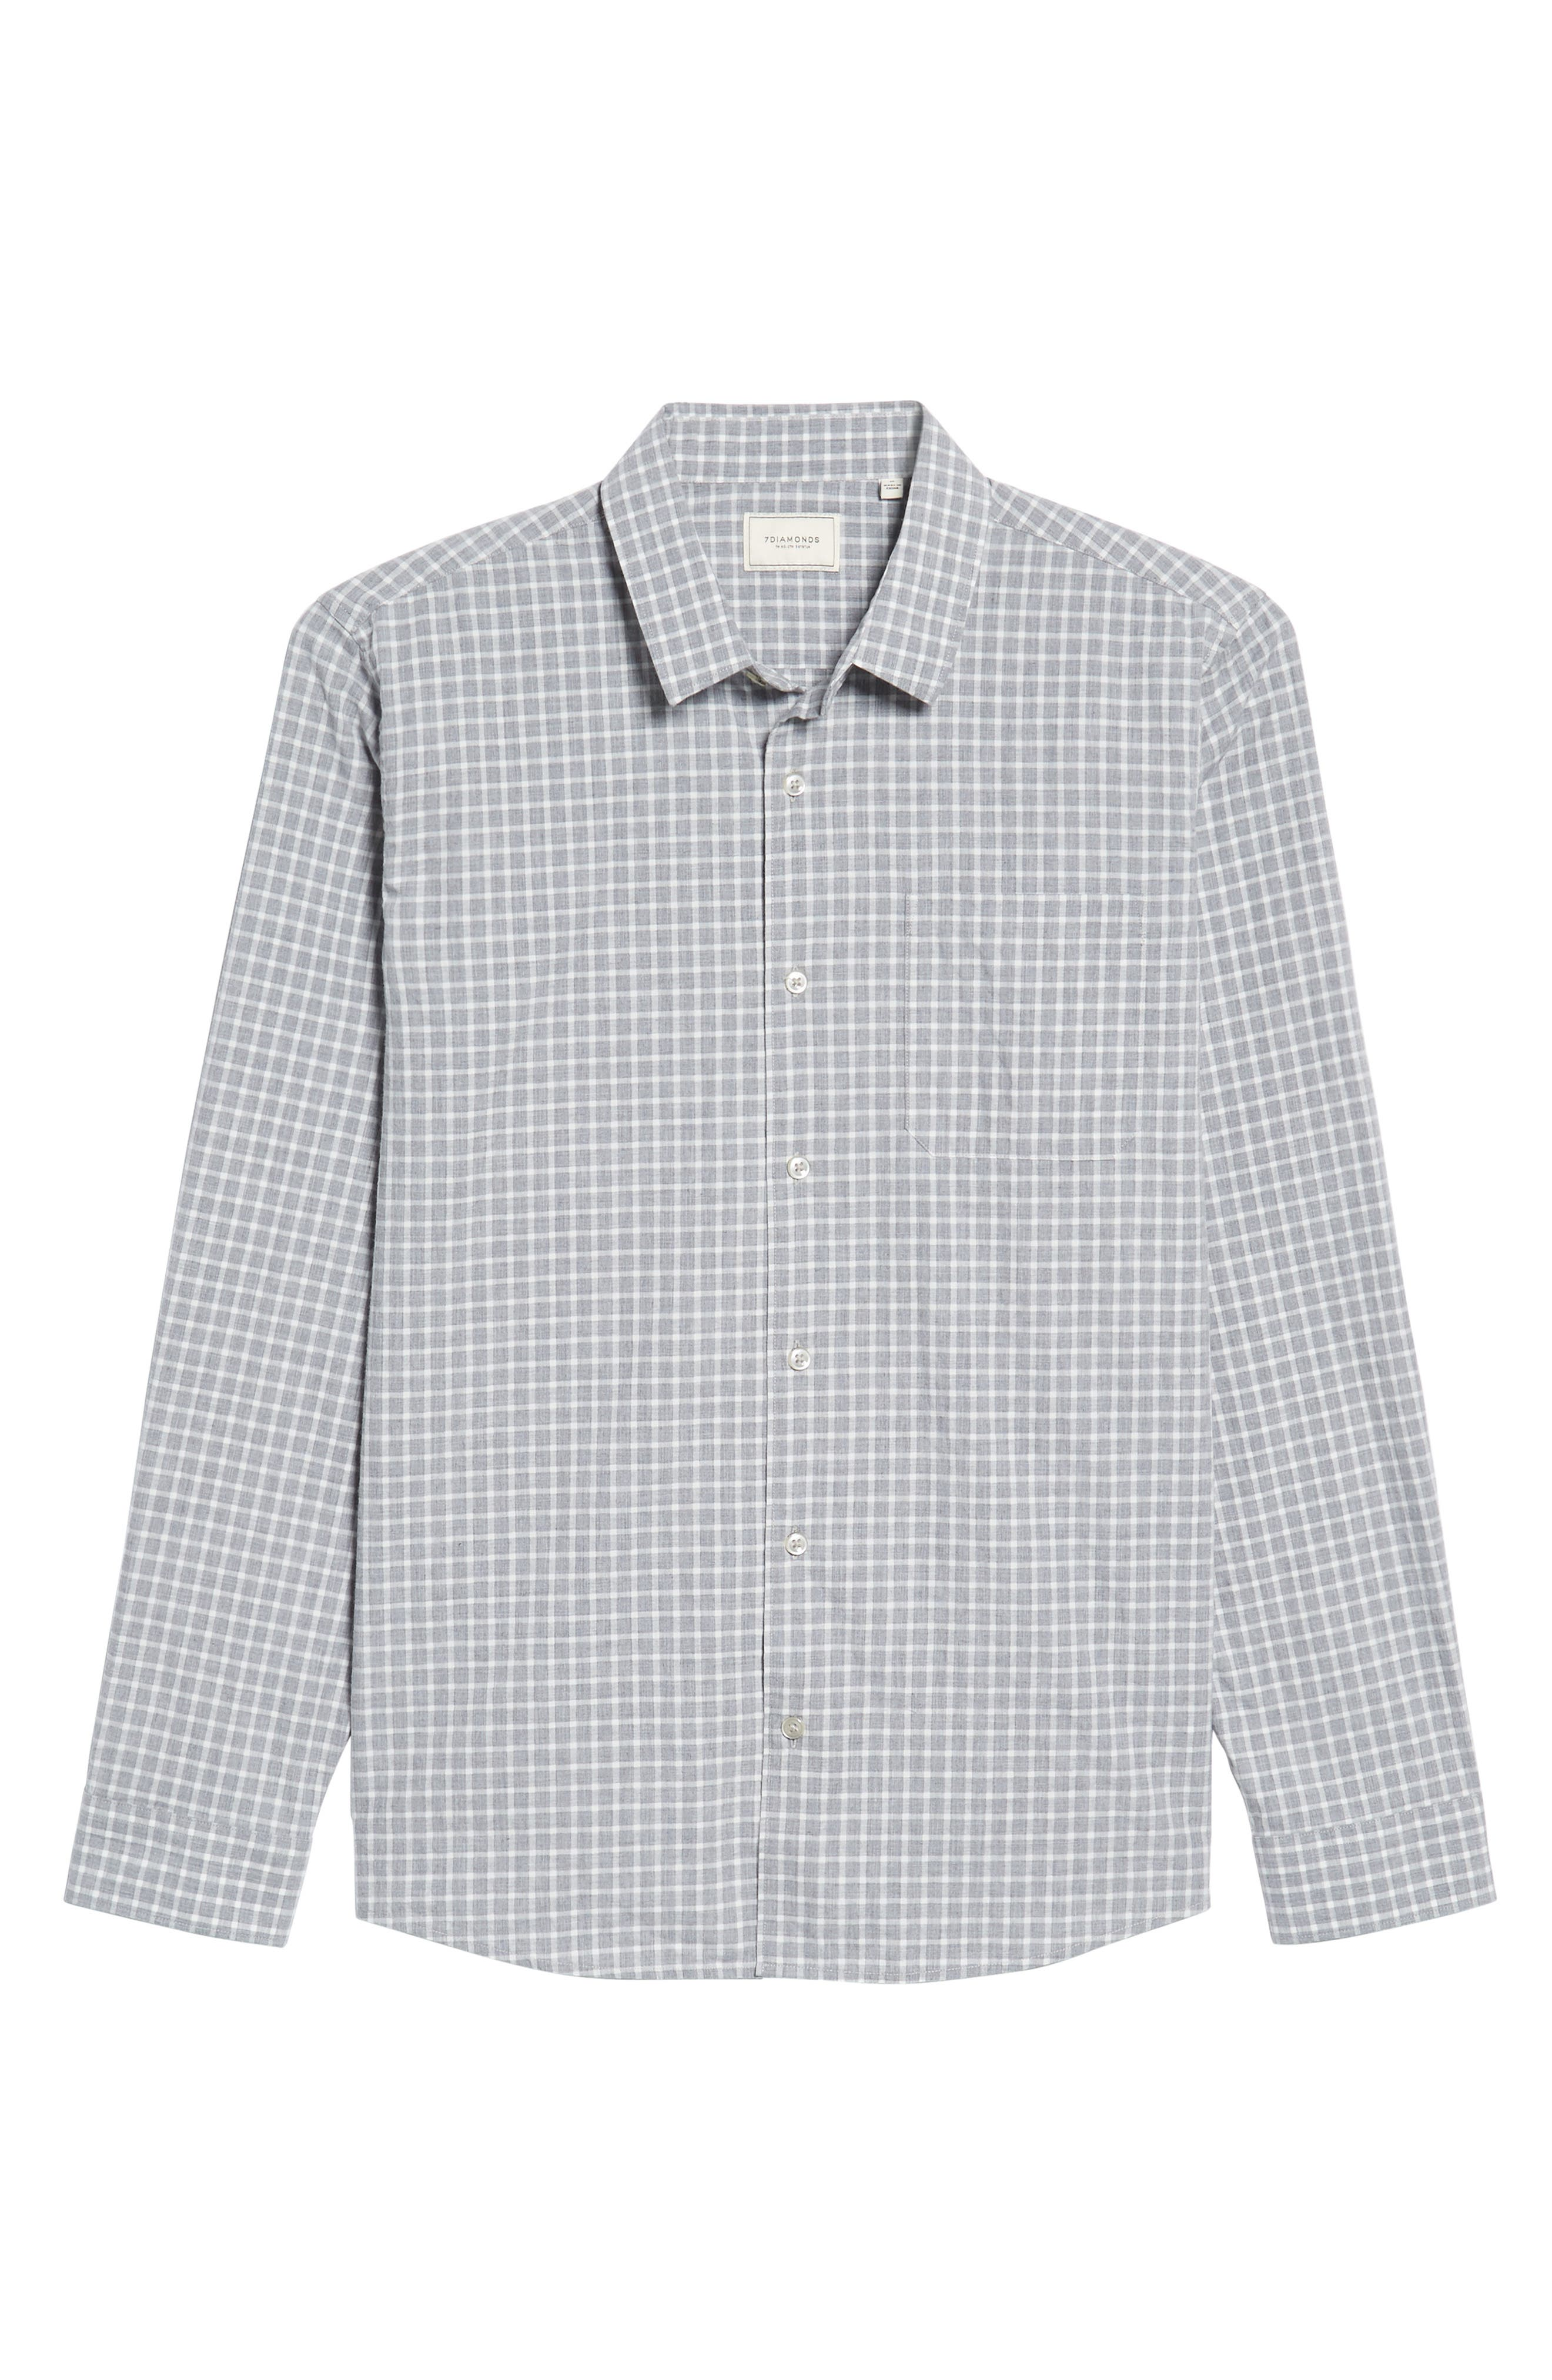 Illusions Woven Shirt,                             Alternate thumbnail 6, color,                             Lt. Grey